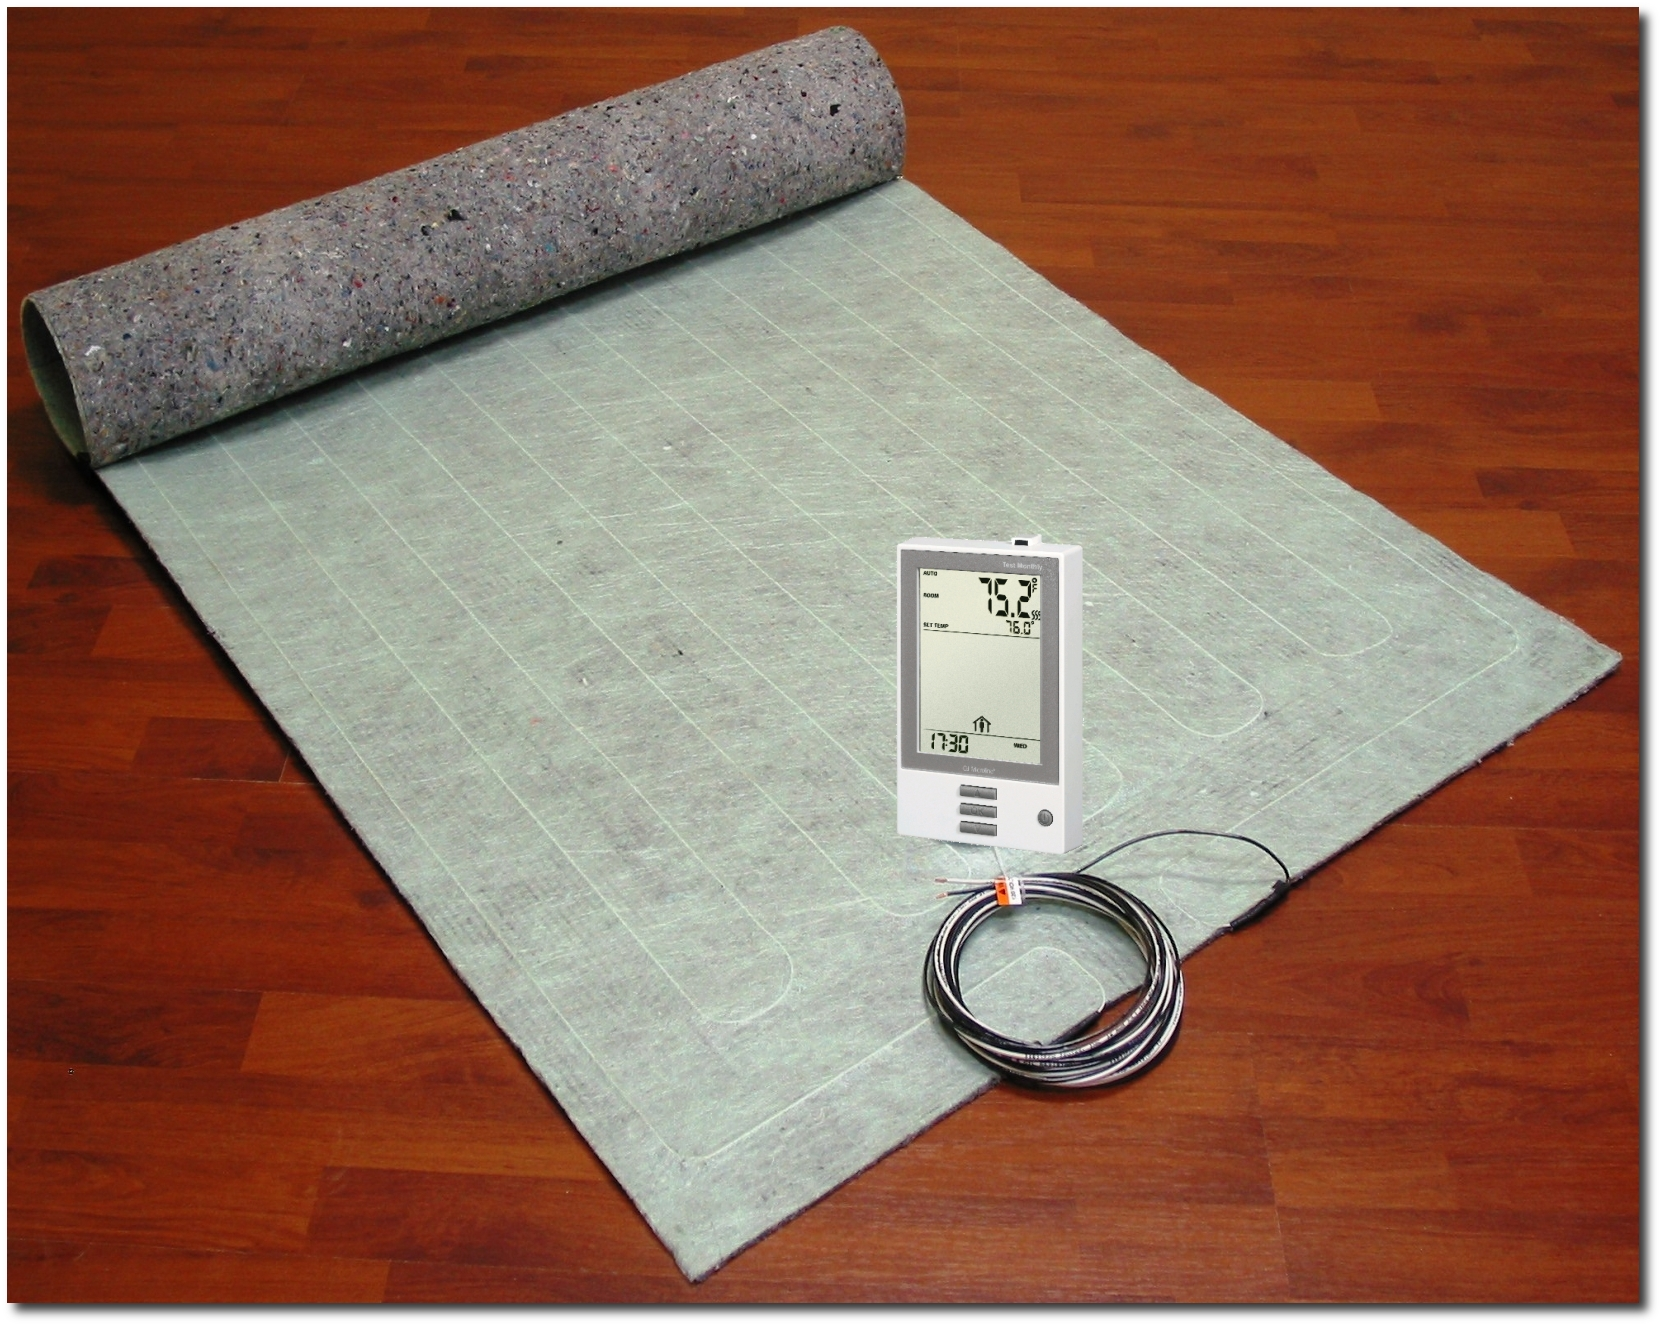 Thermosoft Offers Radiant Floor Heat As Solution To Global